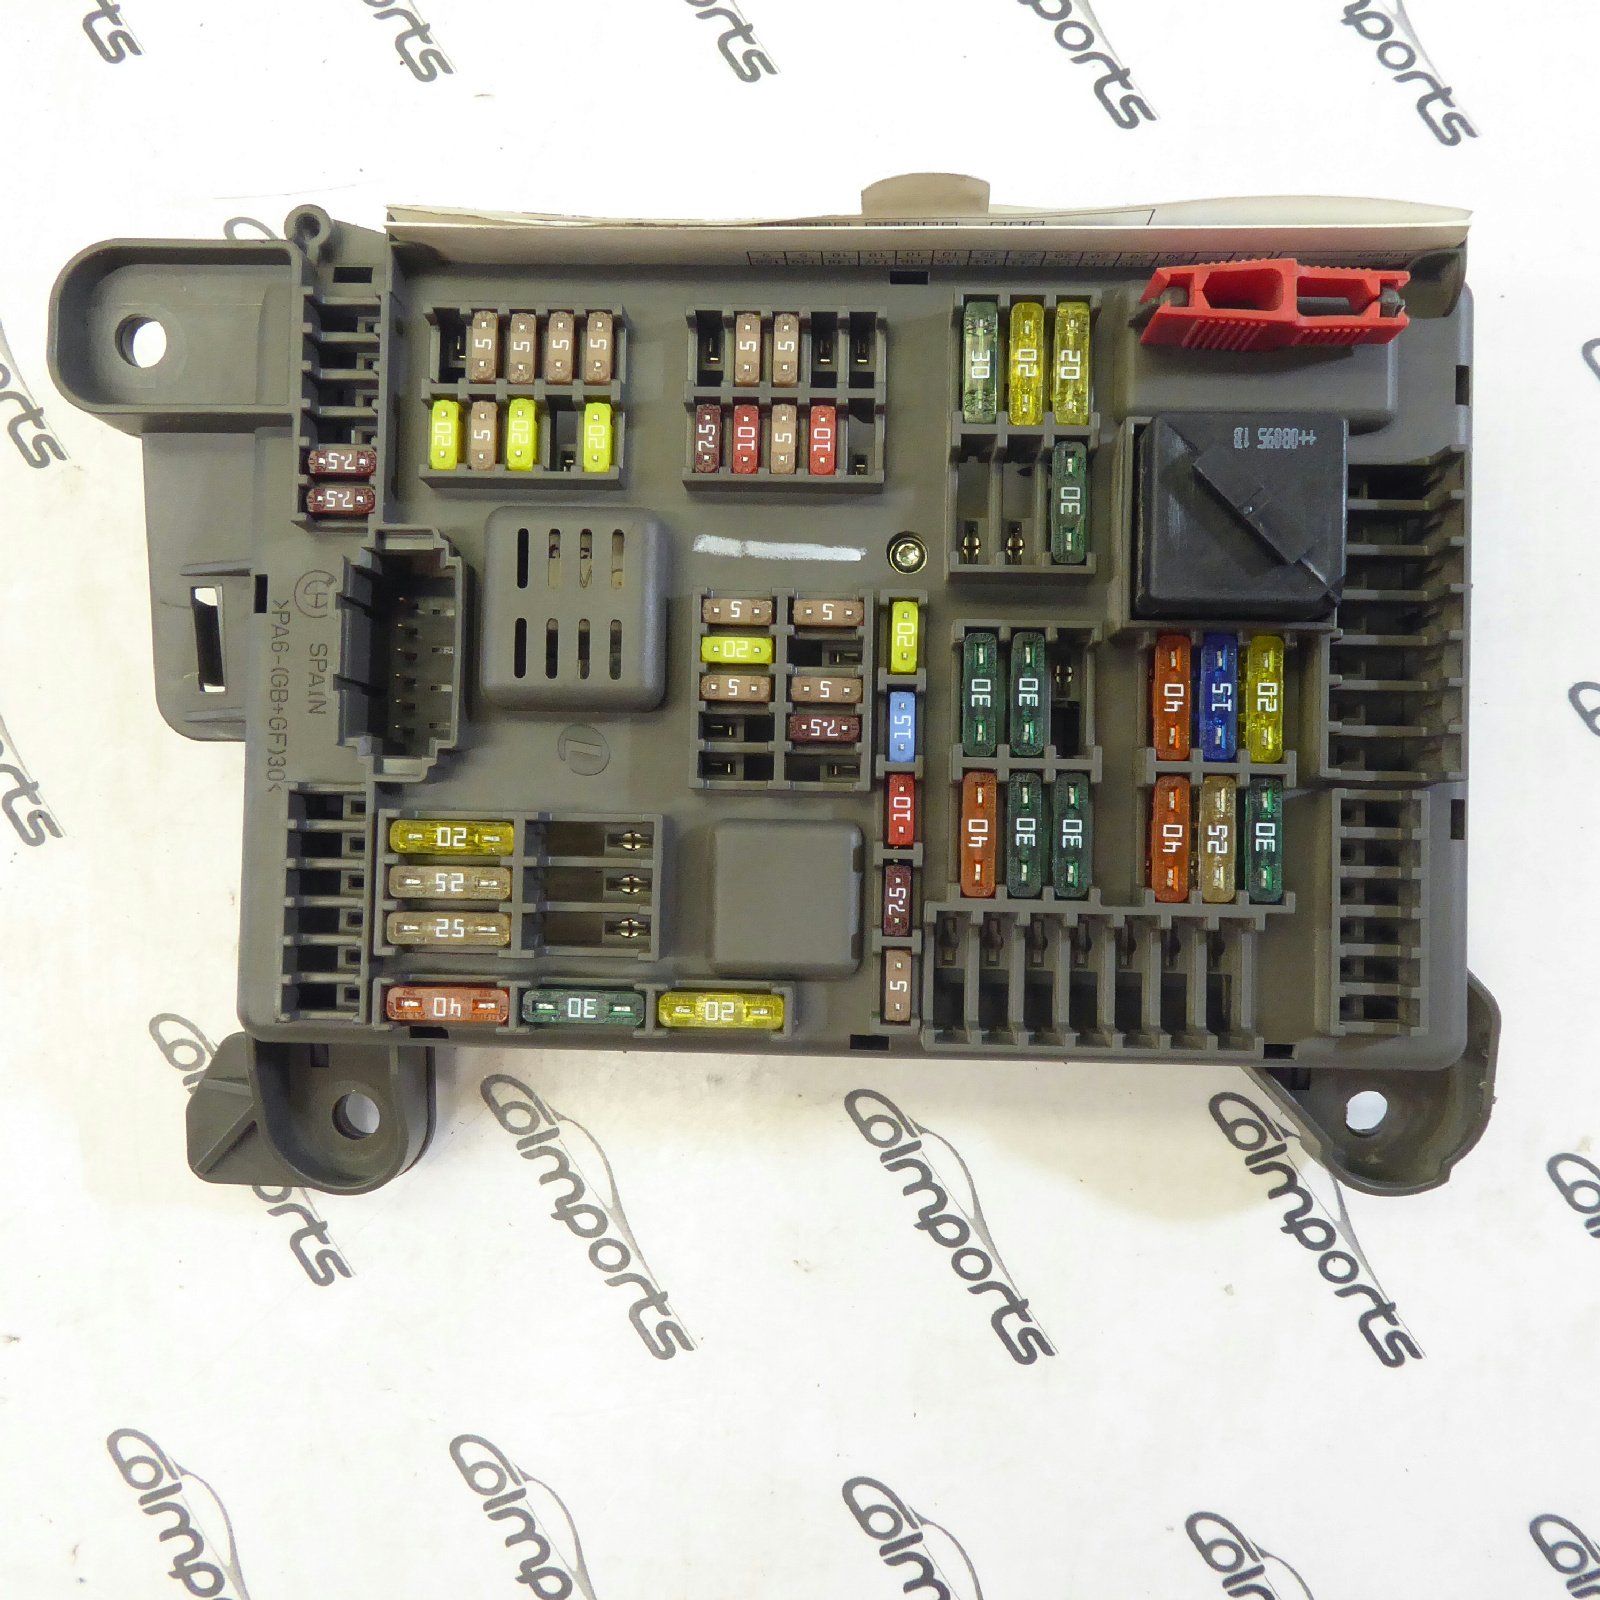 hight resolution of e70 rear fuse box diagrams 2wire telephone jack ranger bmw e70 rear fuse box location bmw e70 rear fuse box location